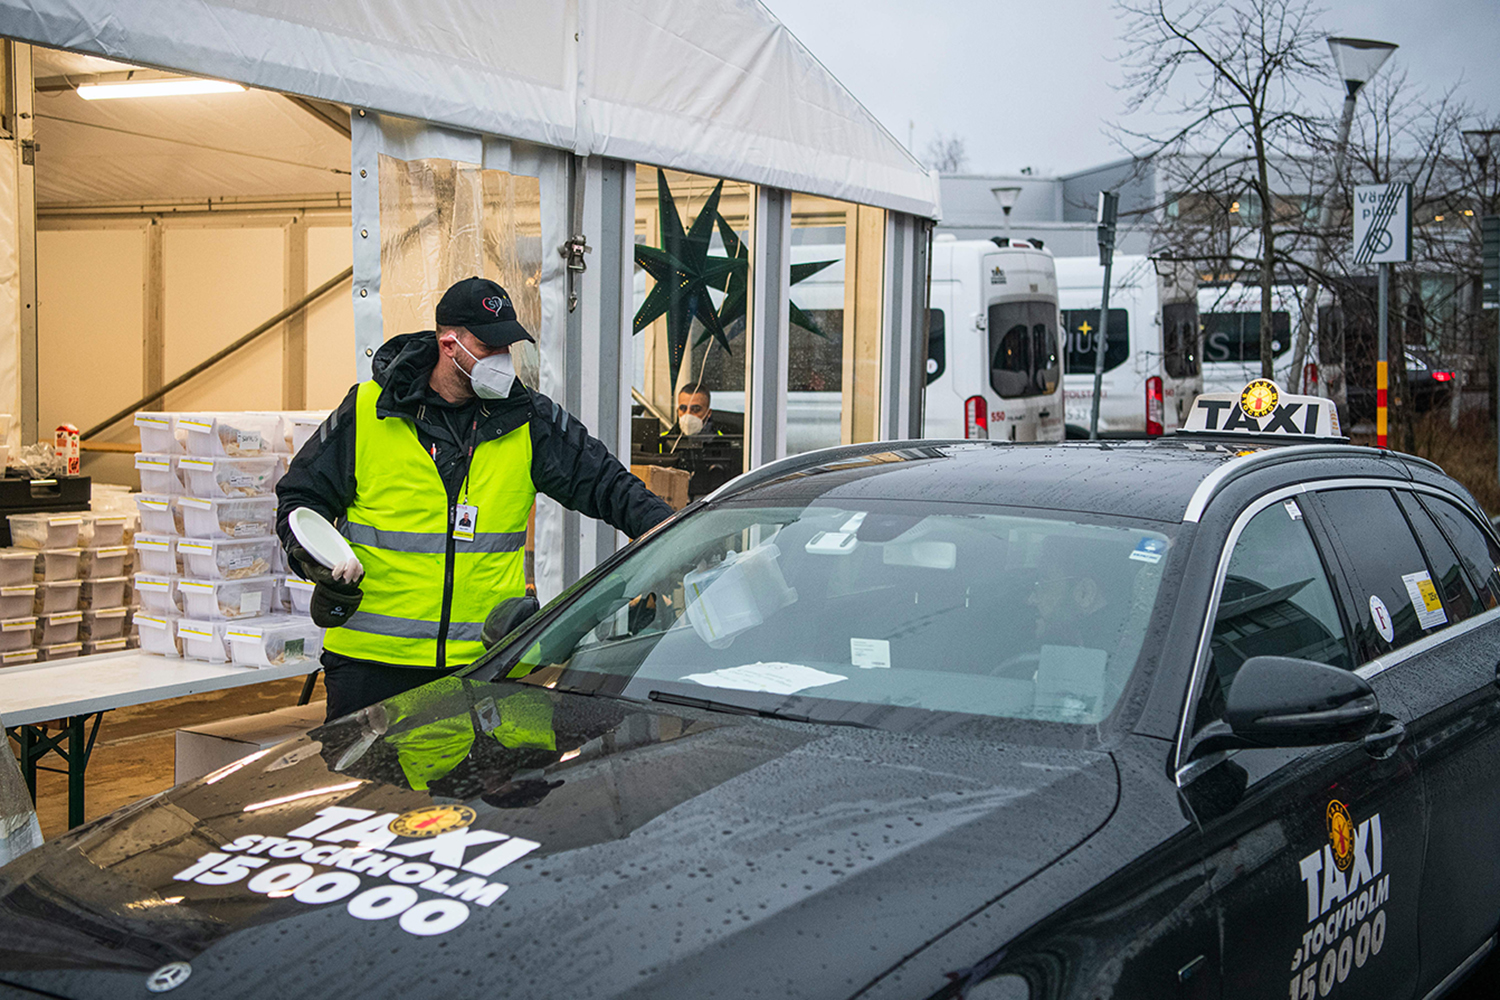 A Taxi Stockholm driver collects COVID-19 test kits from a station in Stockholm on Dec. 4. Drivers from two firms deliver around 25,000 tests a week in the region to people who suspect they have the coronavirus, according to Karolinska University Hospital, which is involved in testing in the area.